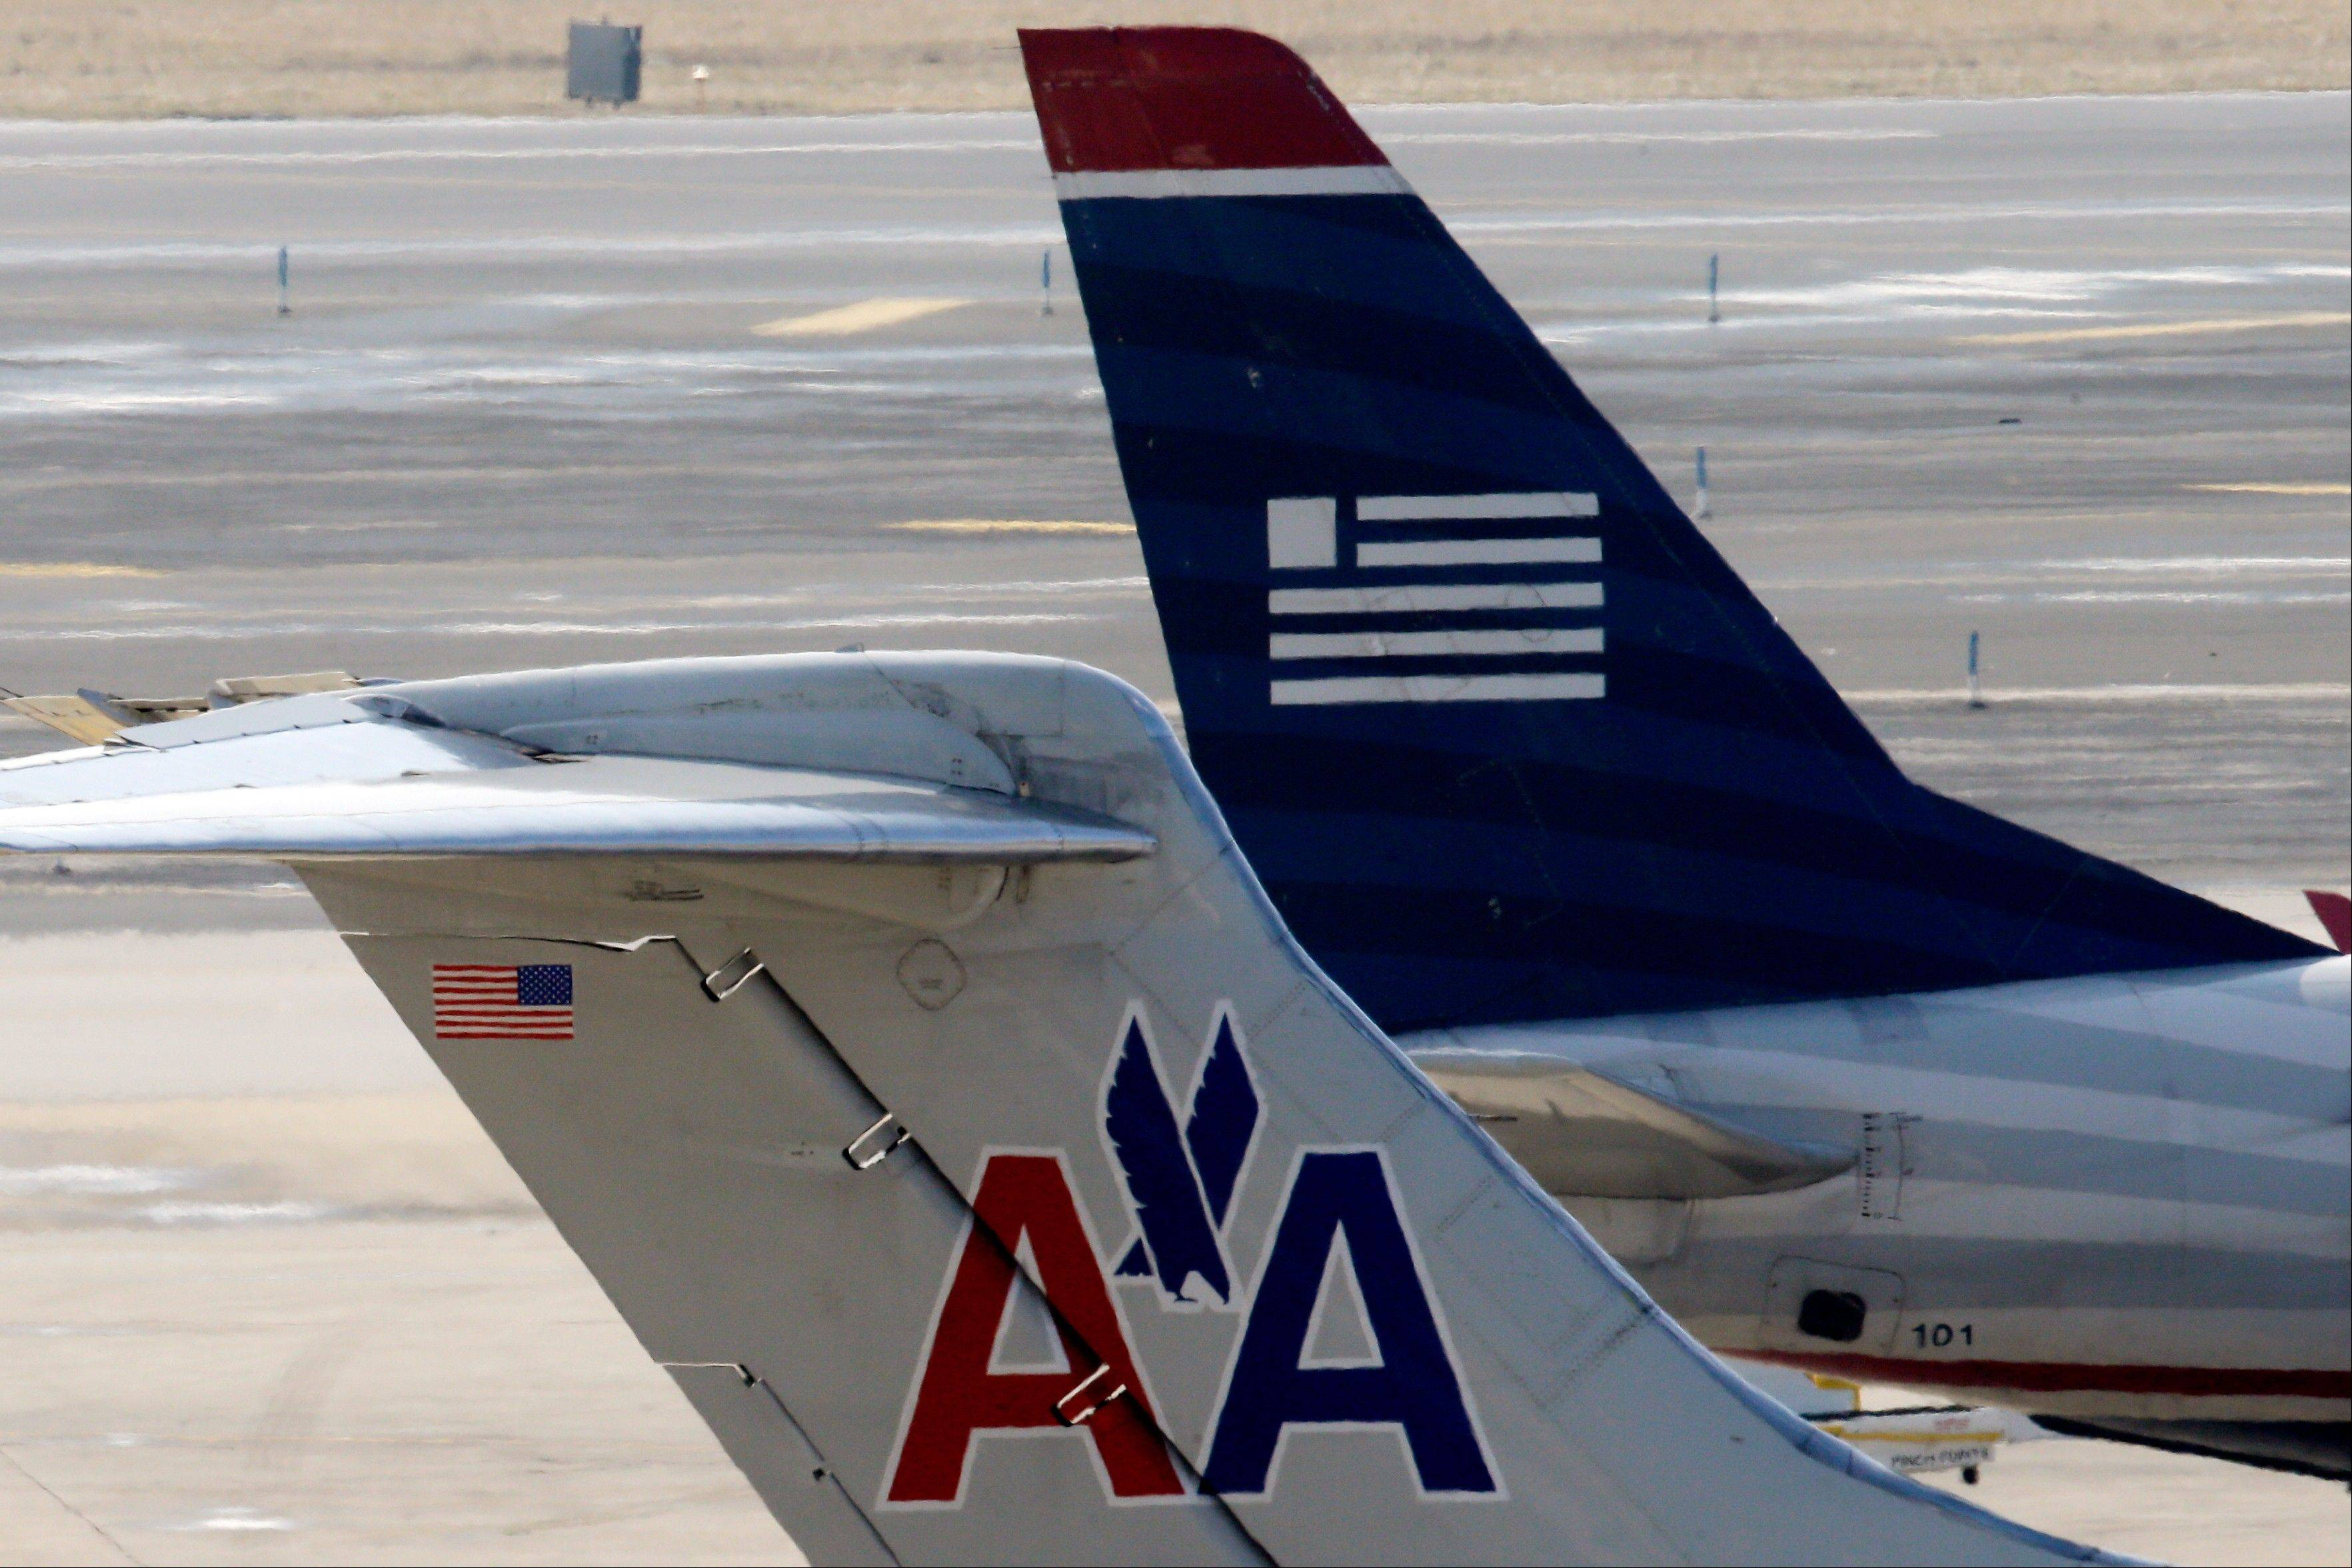 American Airlines won bankruptcy court approval Wednesday to combine with US Airways and form the world's biggest airline.